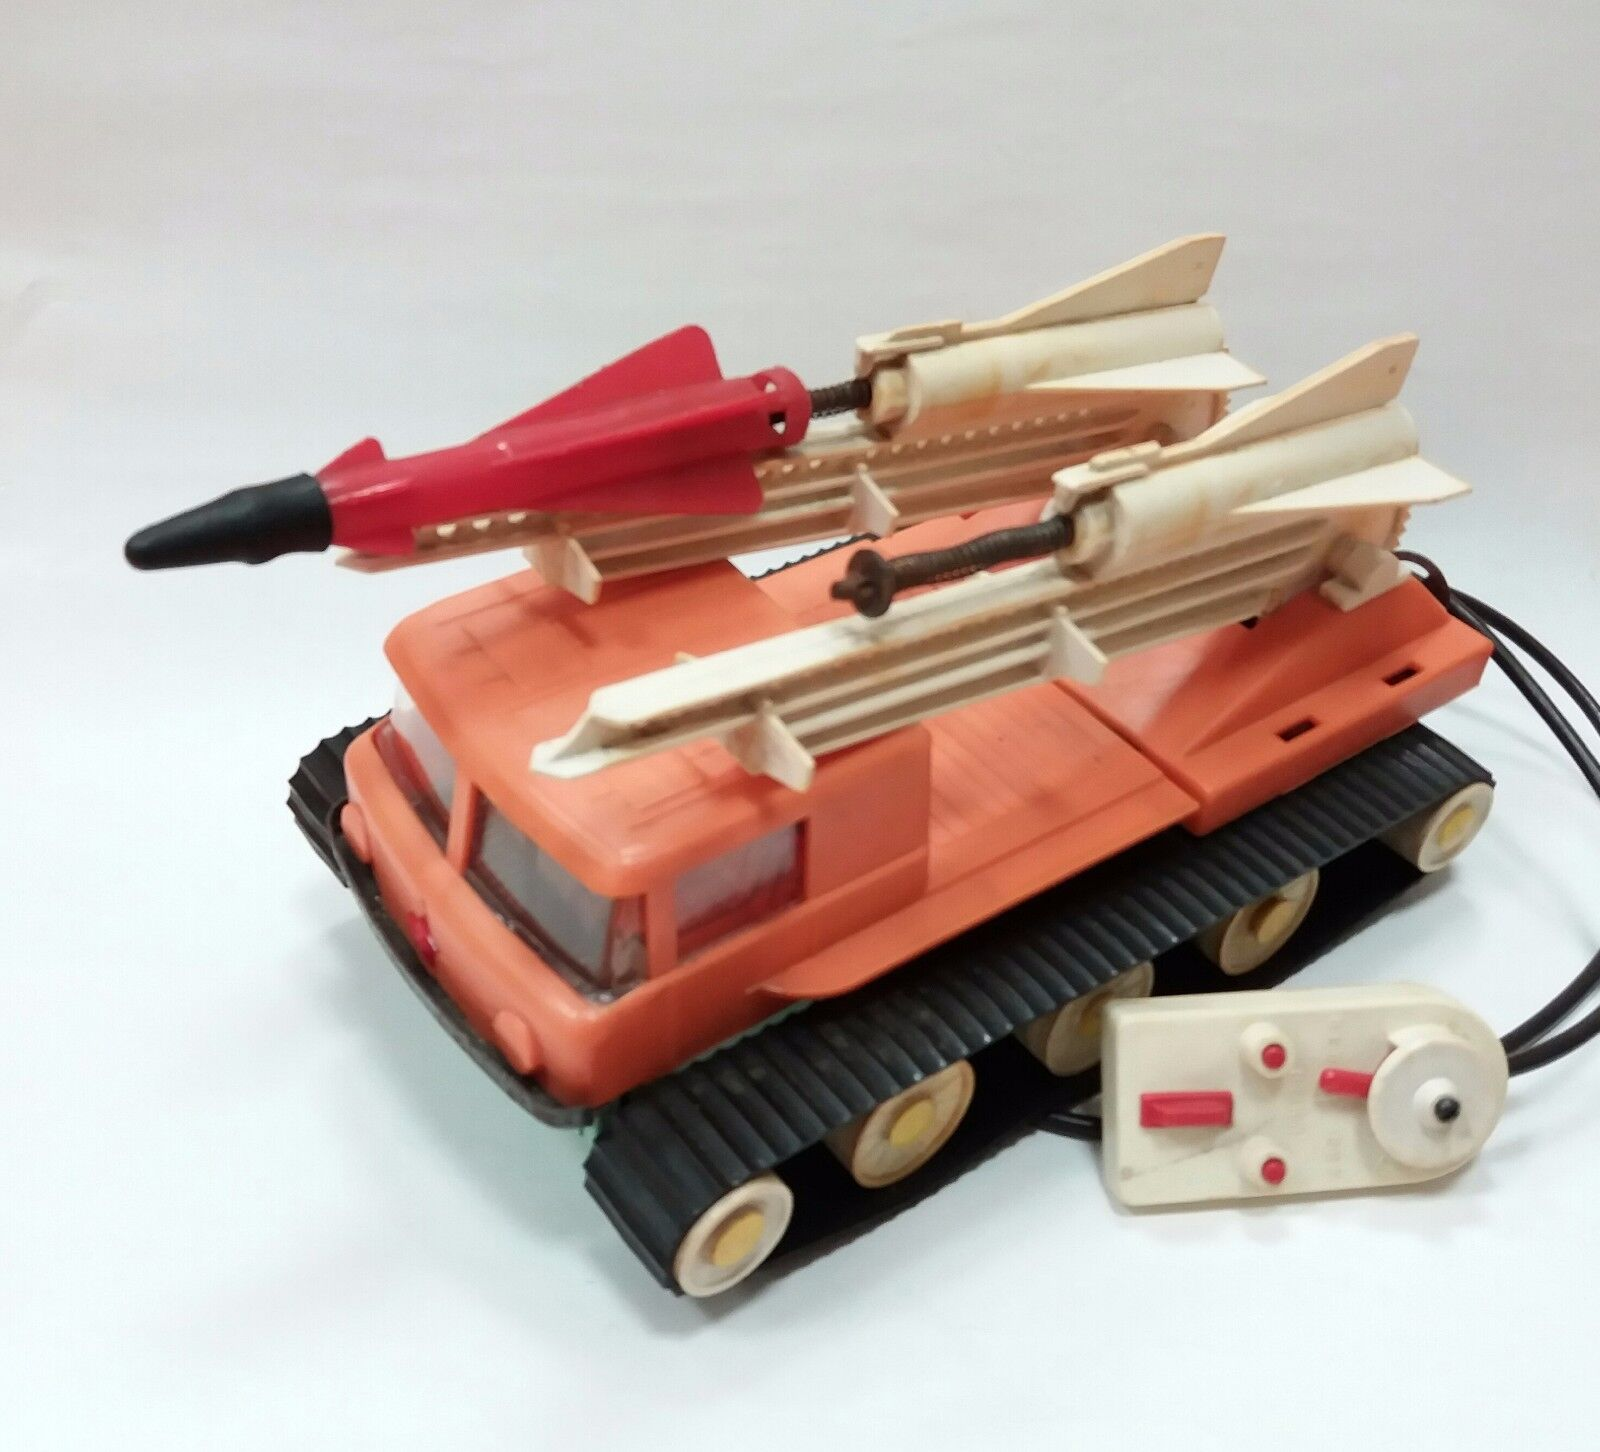 EXTREMLY RARE RUSSIAN USSR USSR USSR MILITARY LAUNCHER CHAIN TRUCK KATIUSHA ROCKET TOY bc9957